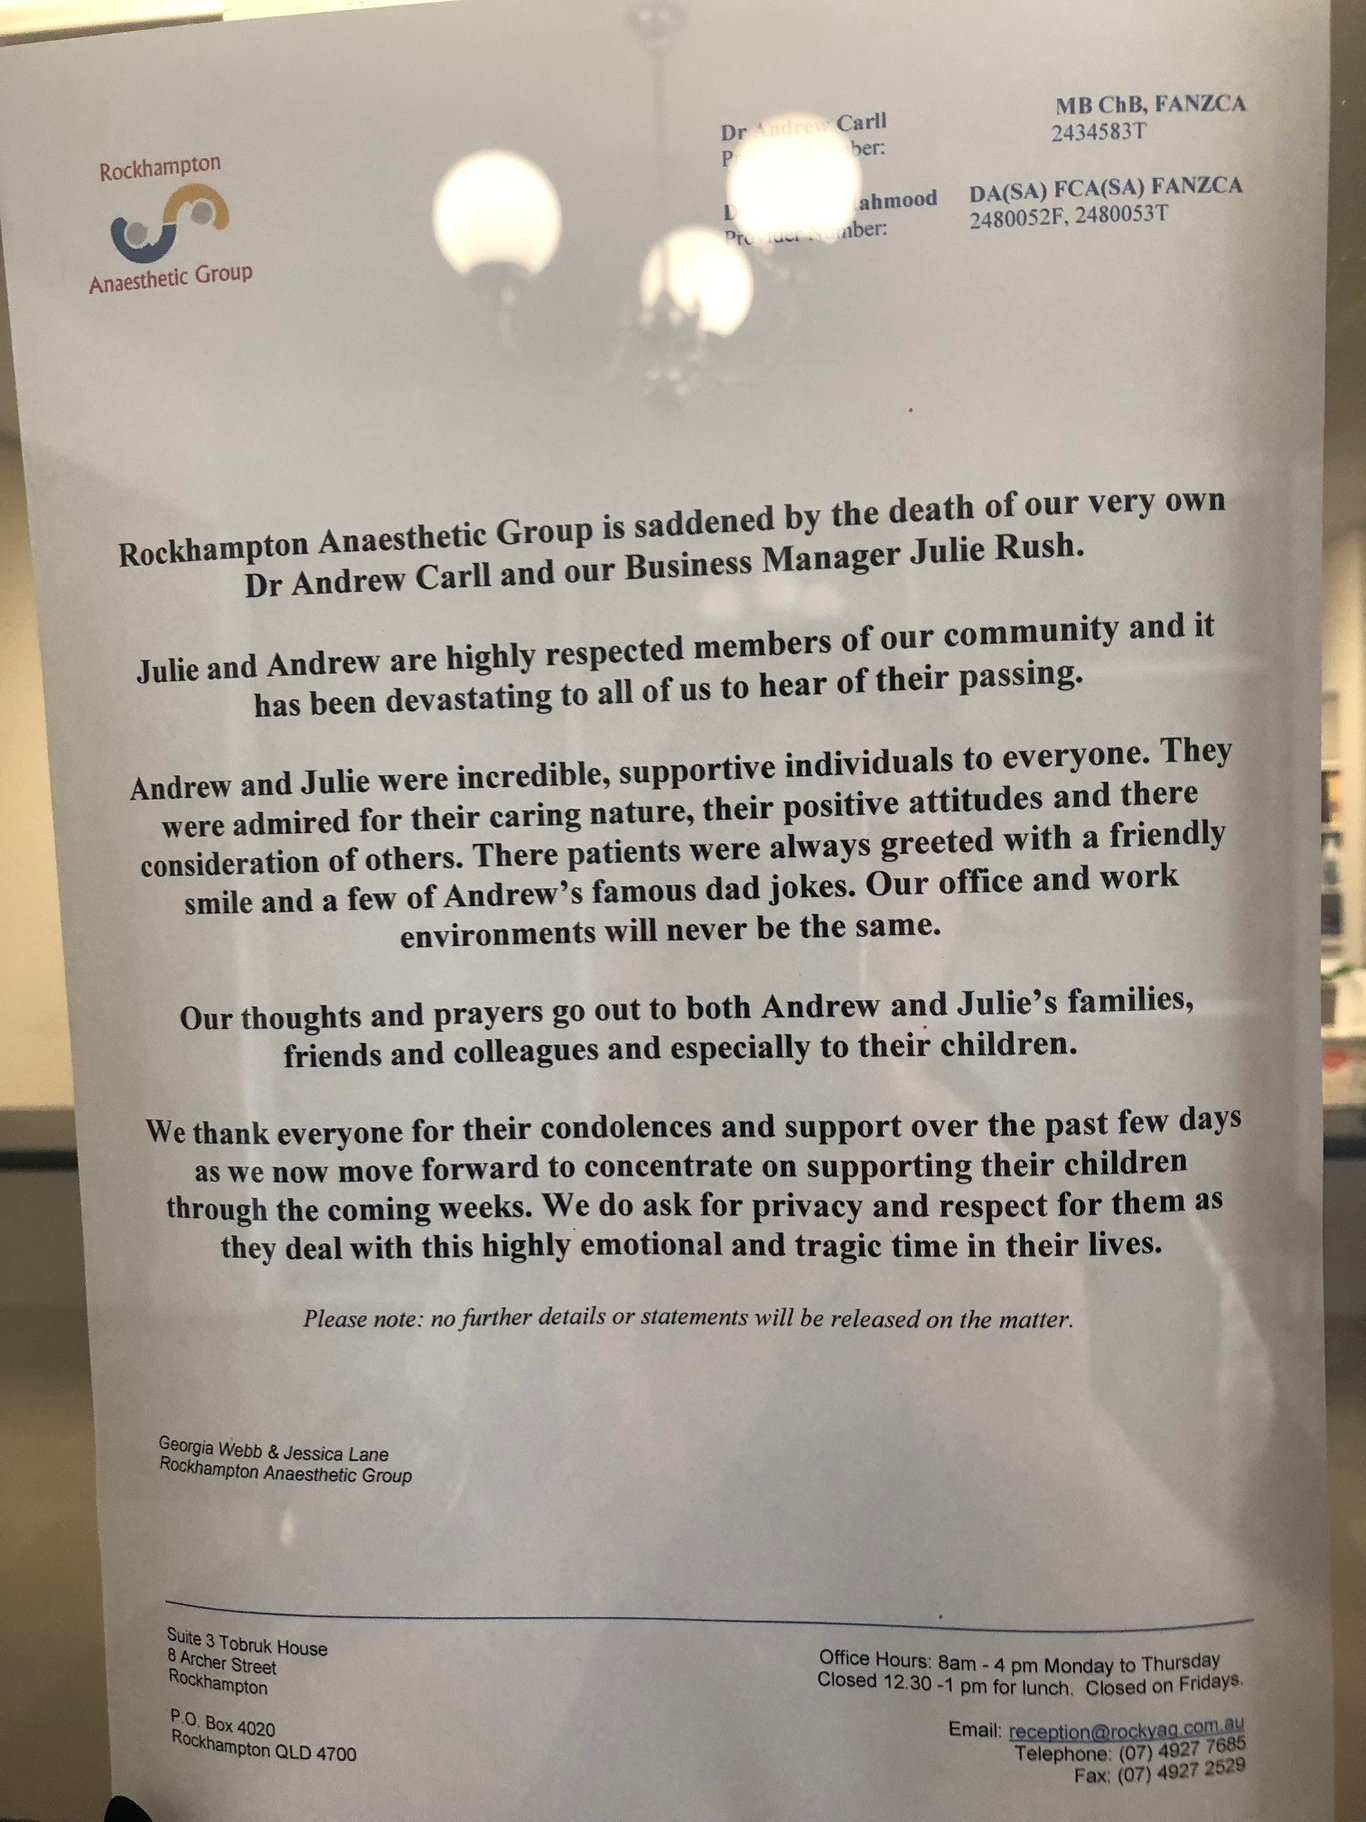 Rockhampton Anaesthetic Group has made an official statement in regards to the death of two of their staff members on Monday night